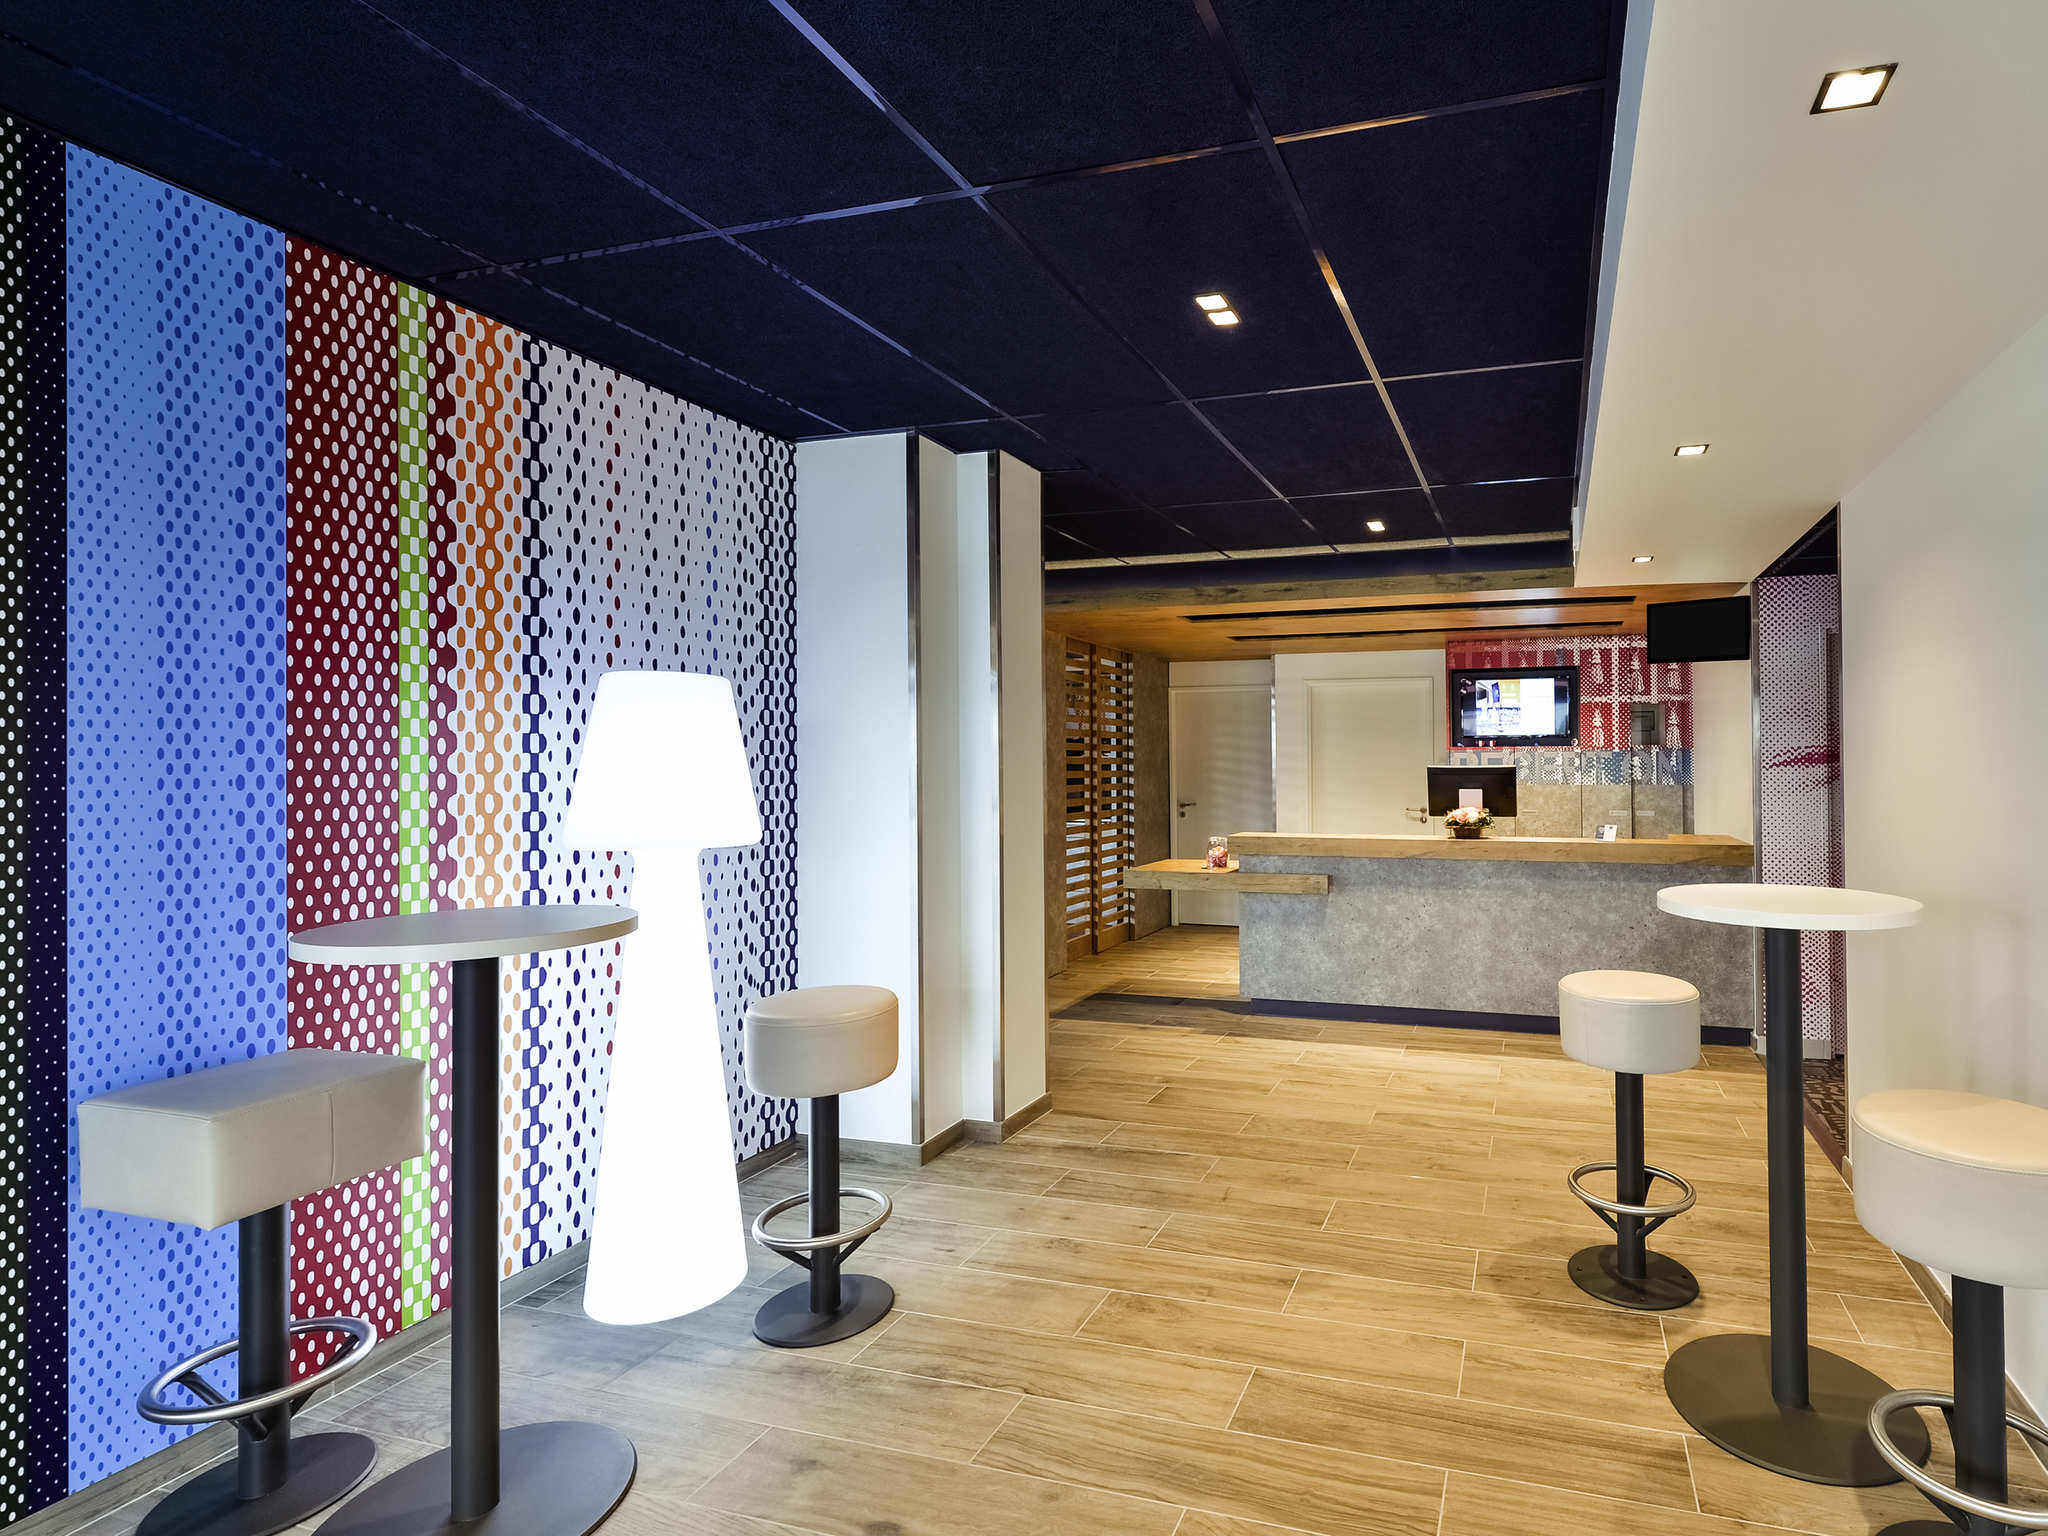 Hotel – Ibis budget Macon Creches (opening: mei 2018)